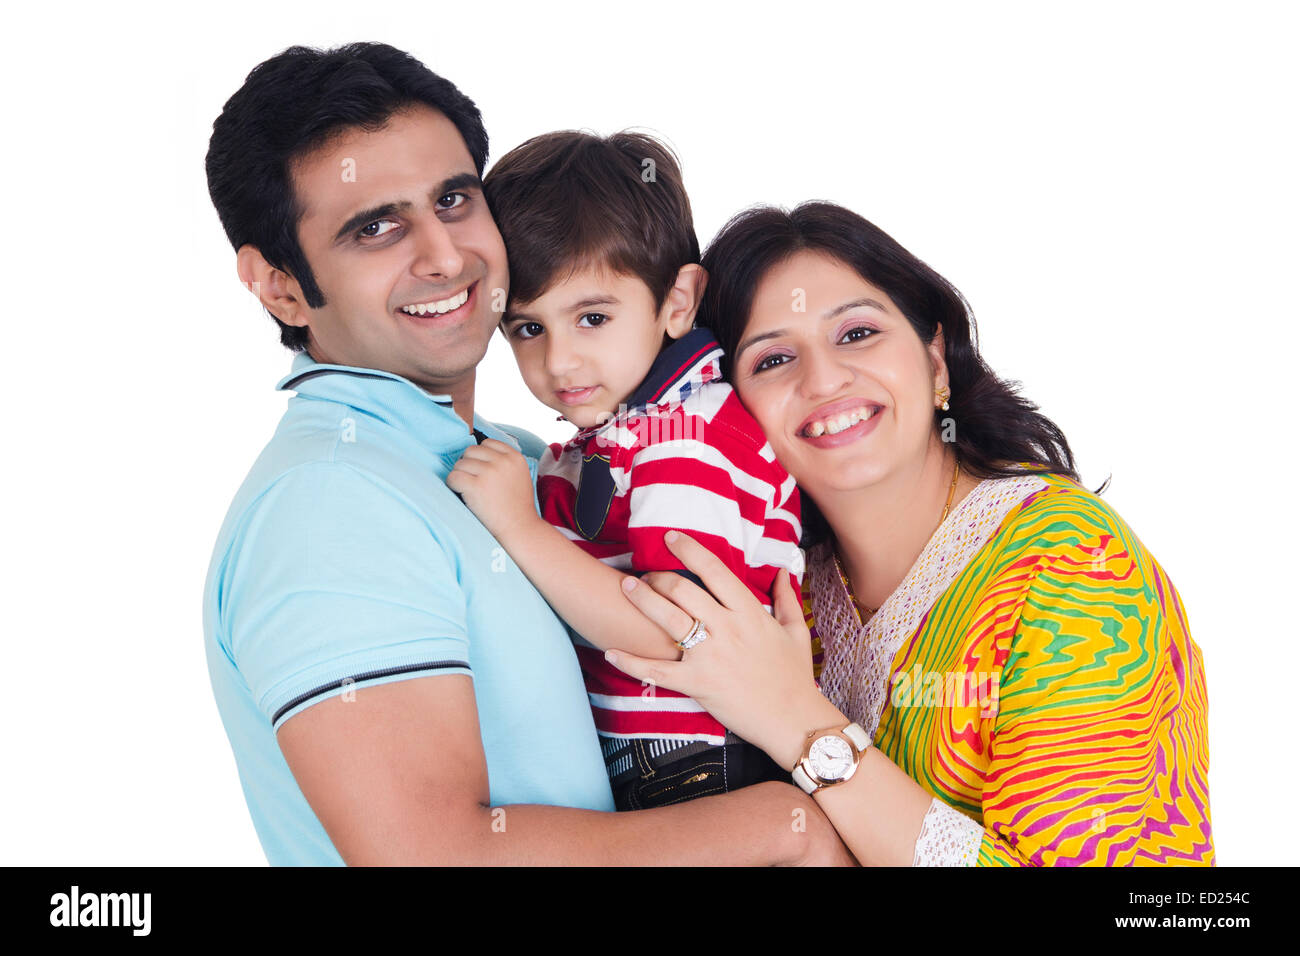 indian Parents with child care Stock Photo: 76879948 - Alamy